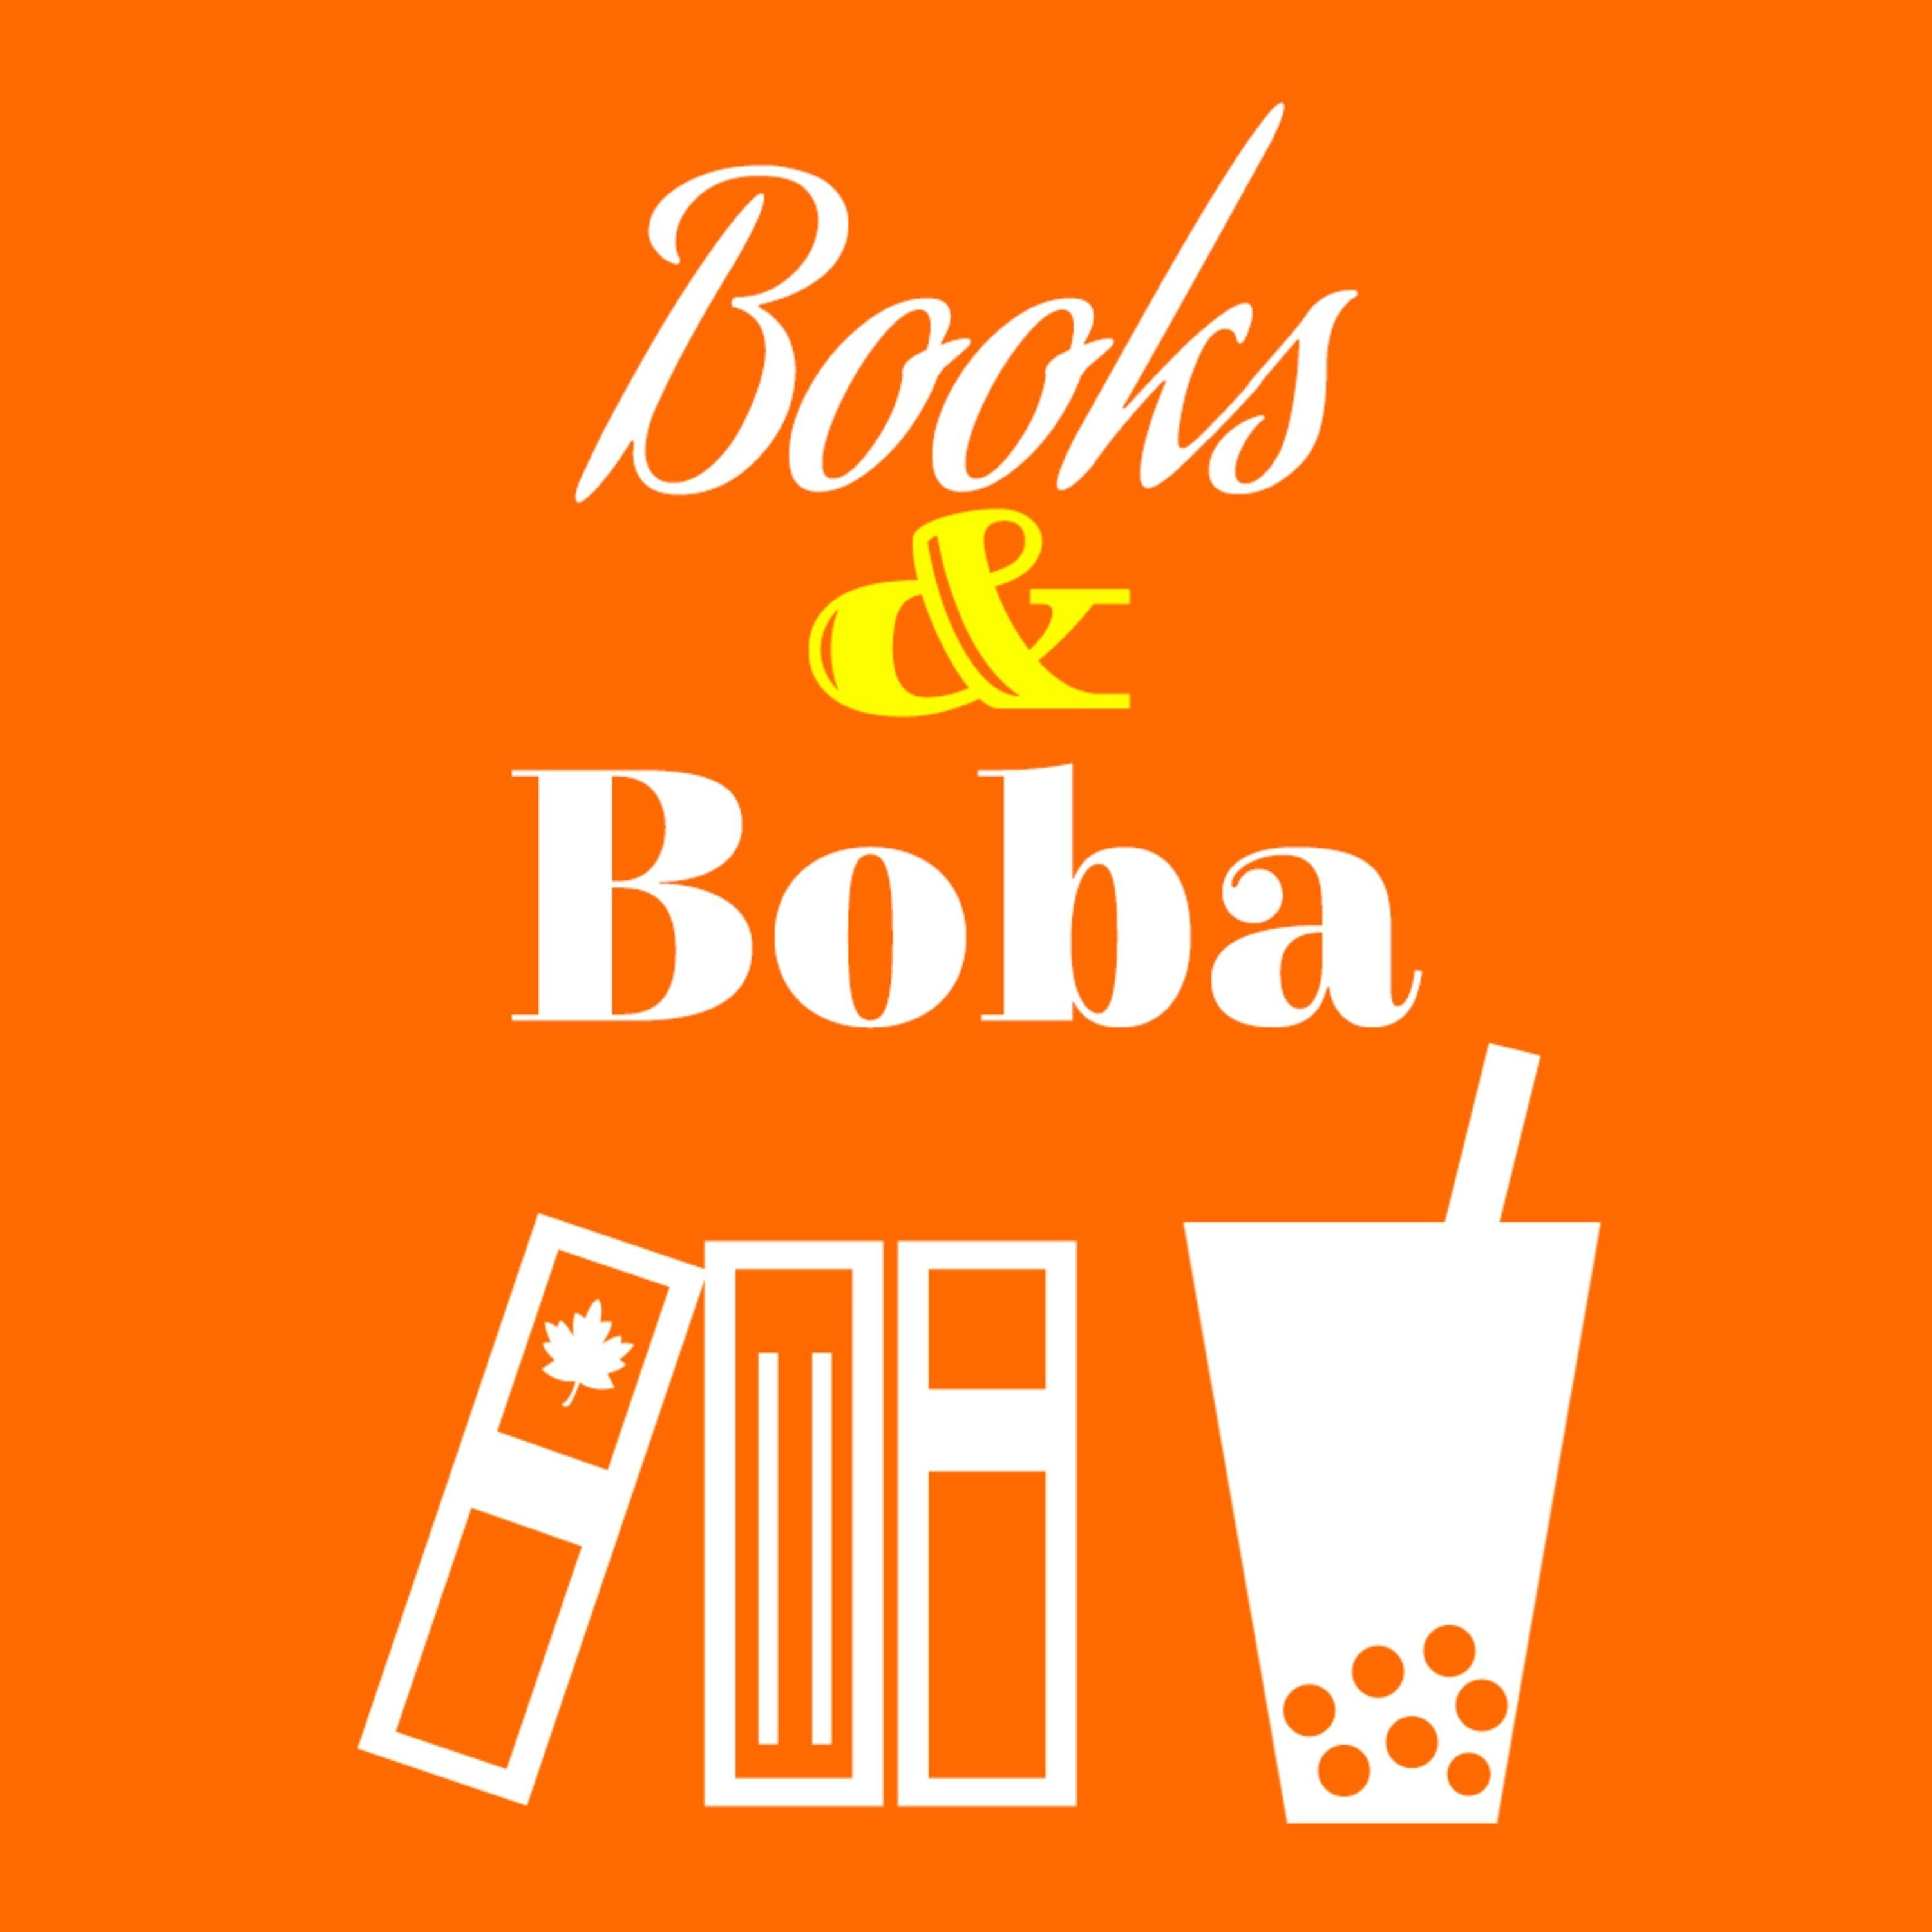 Books and Boba podcast